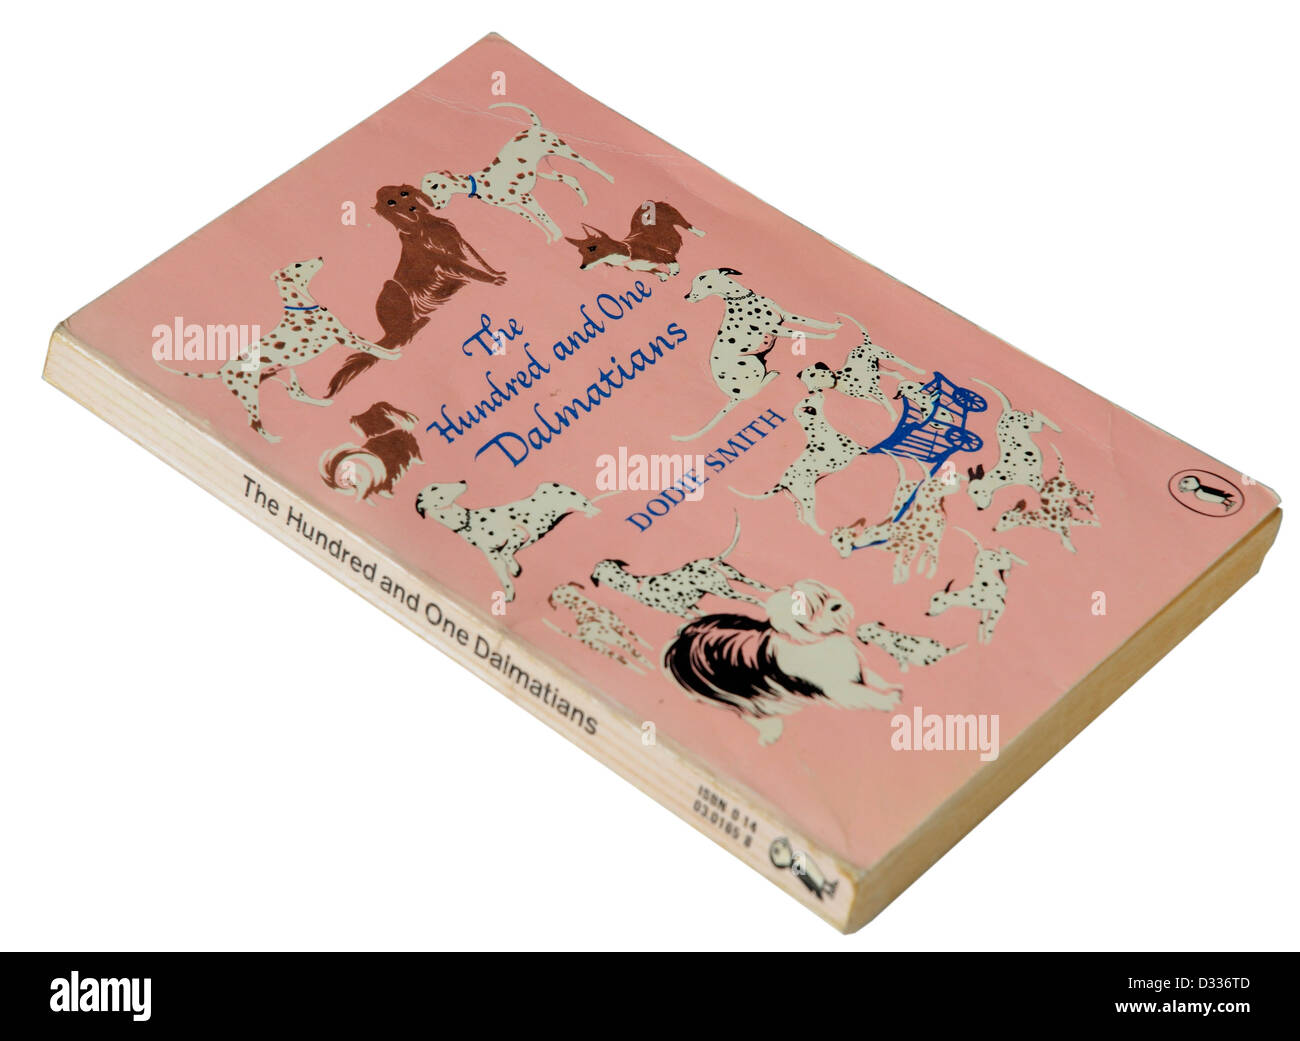 The Hundred and One Dalmatians by Dodie Smith - Stock Image